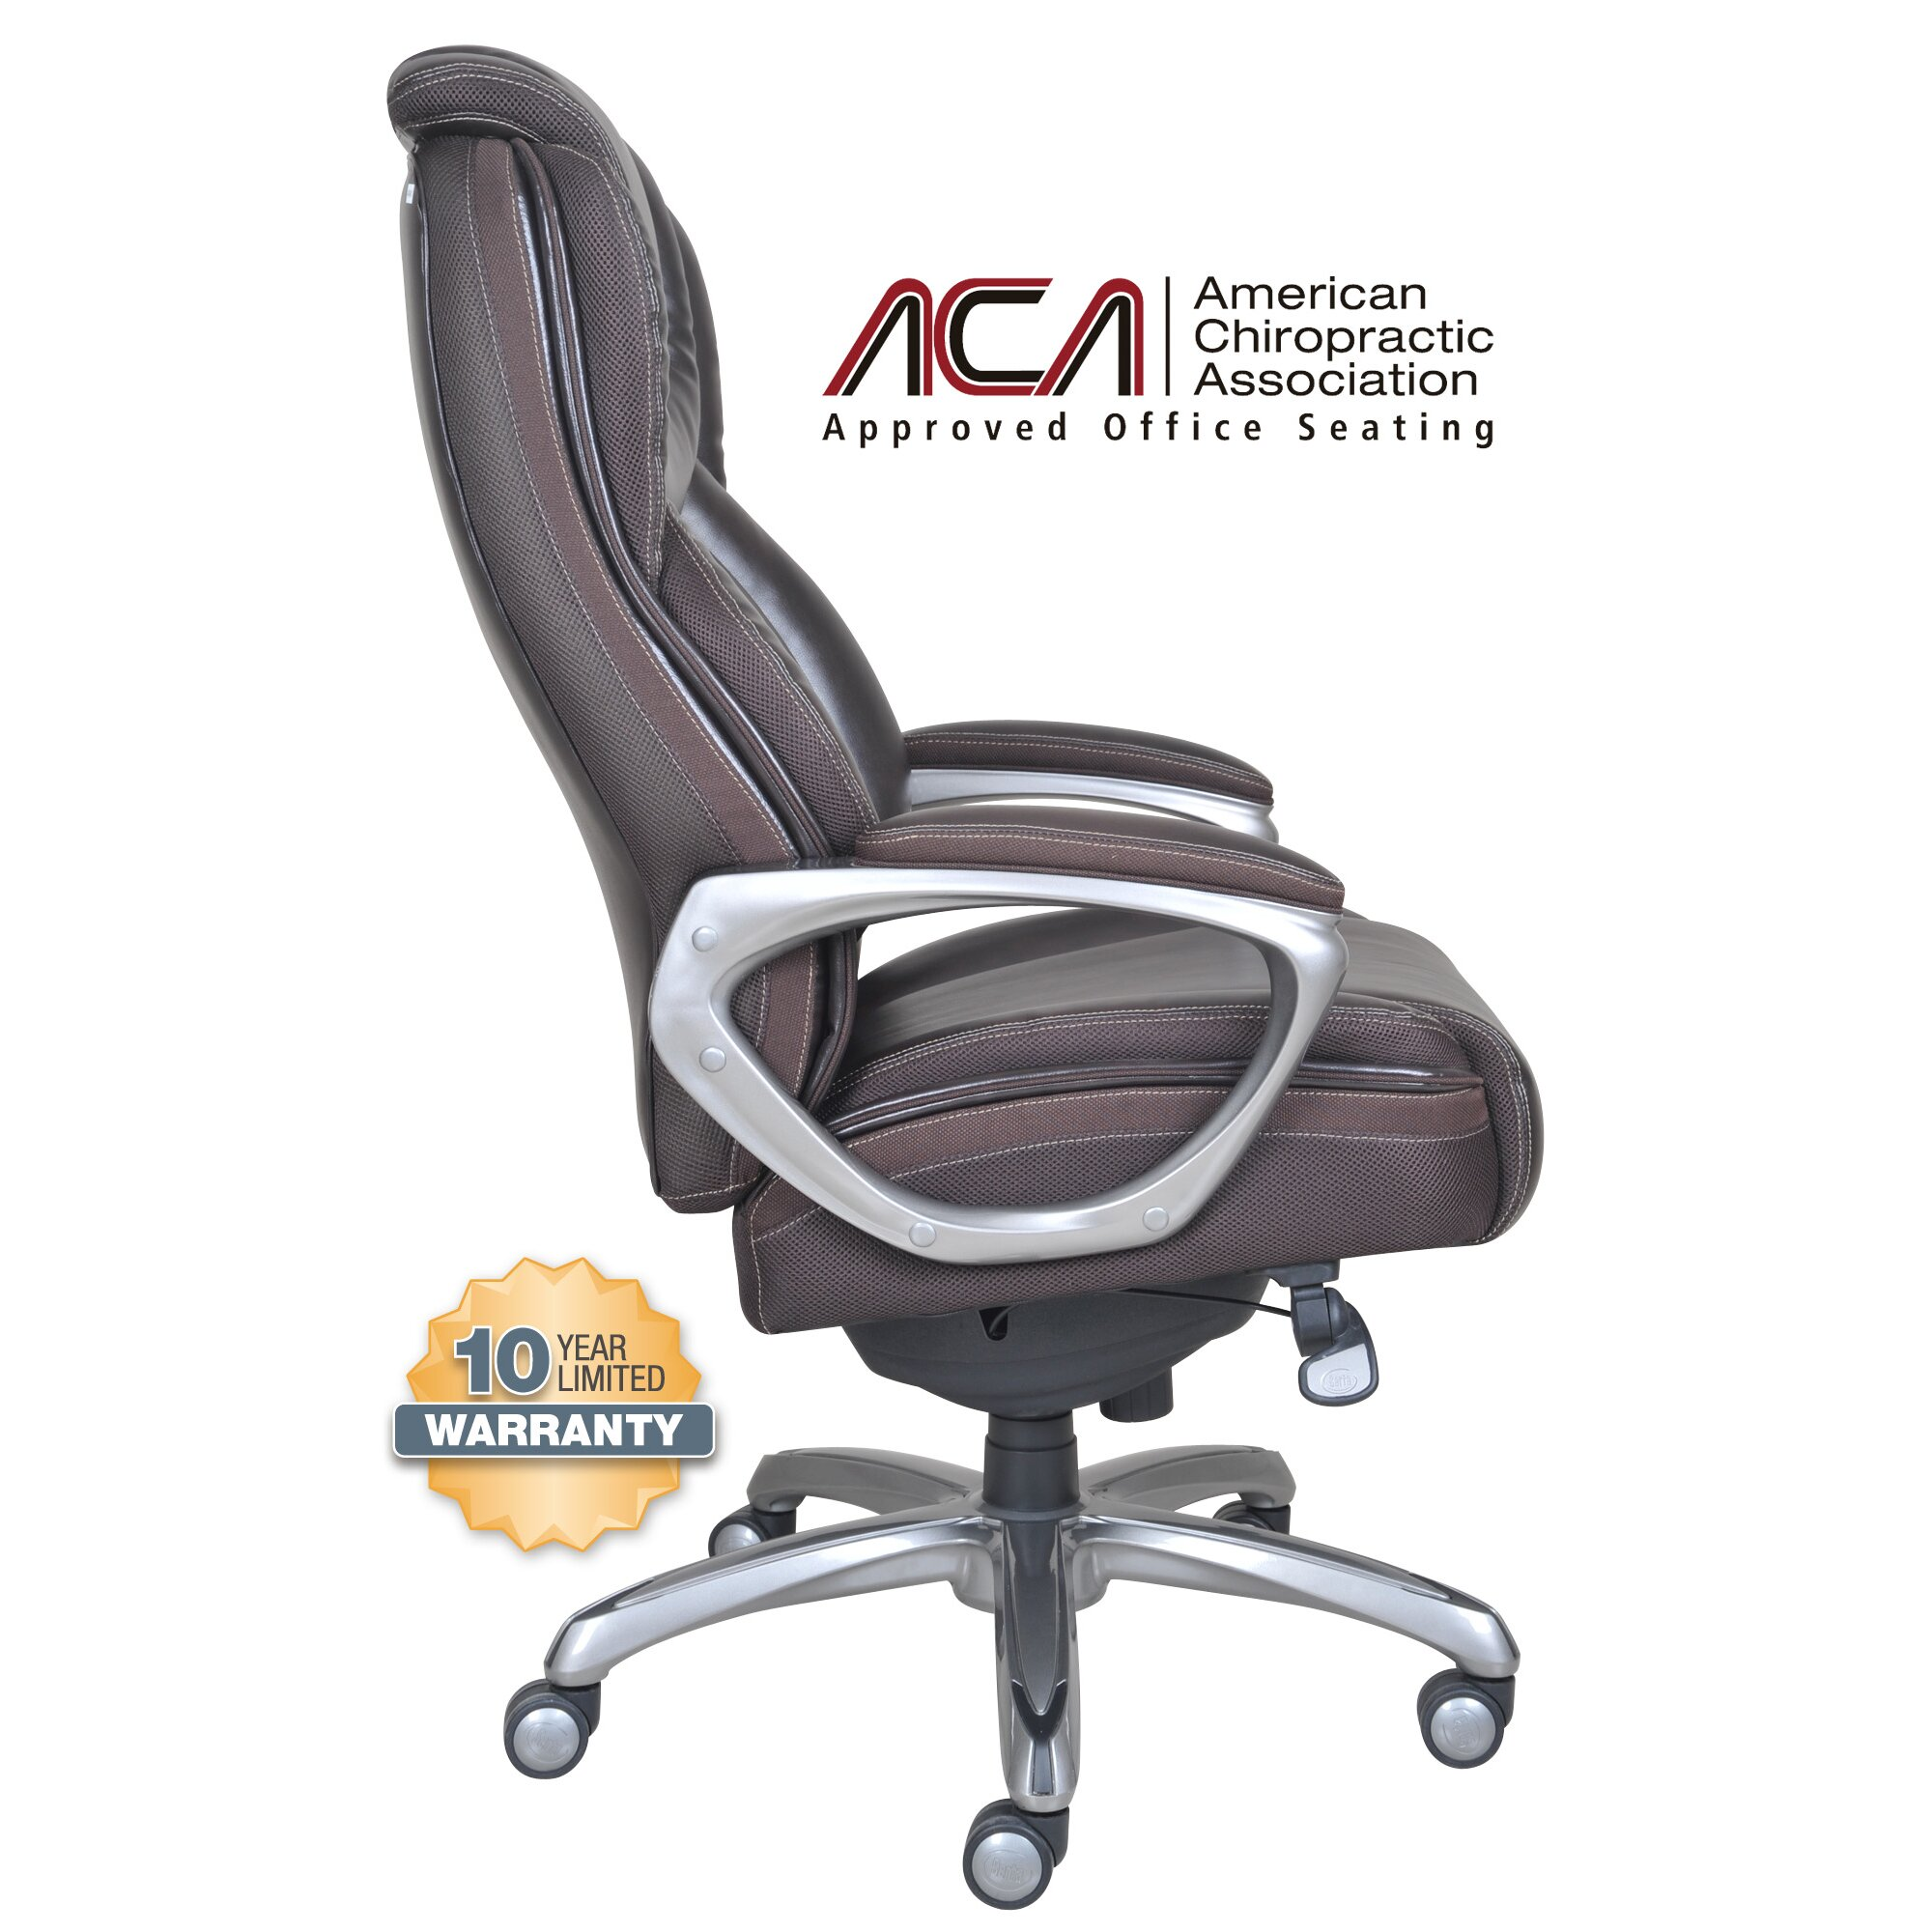 Serta At Home High Back Leather Executive Office Chair Home Decor